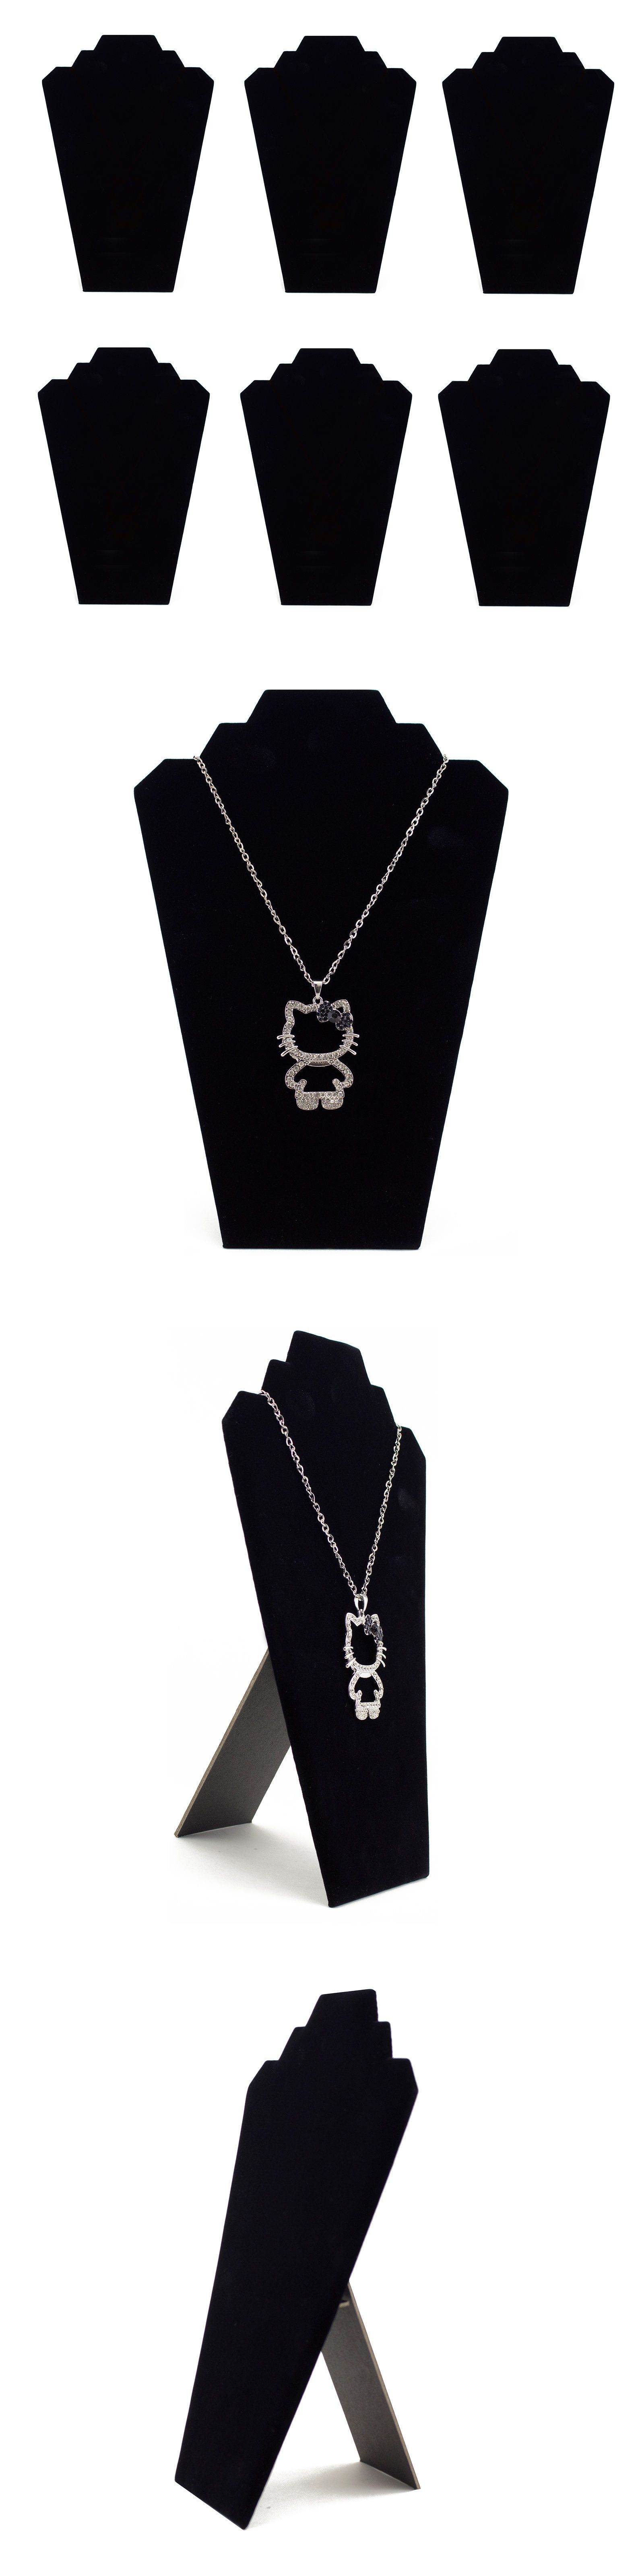 Necklace and pendant set black velvet necklace padded bust